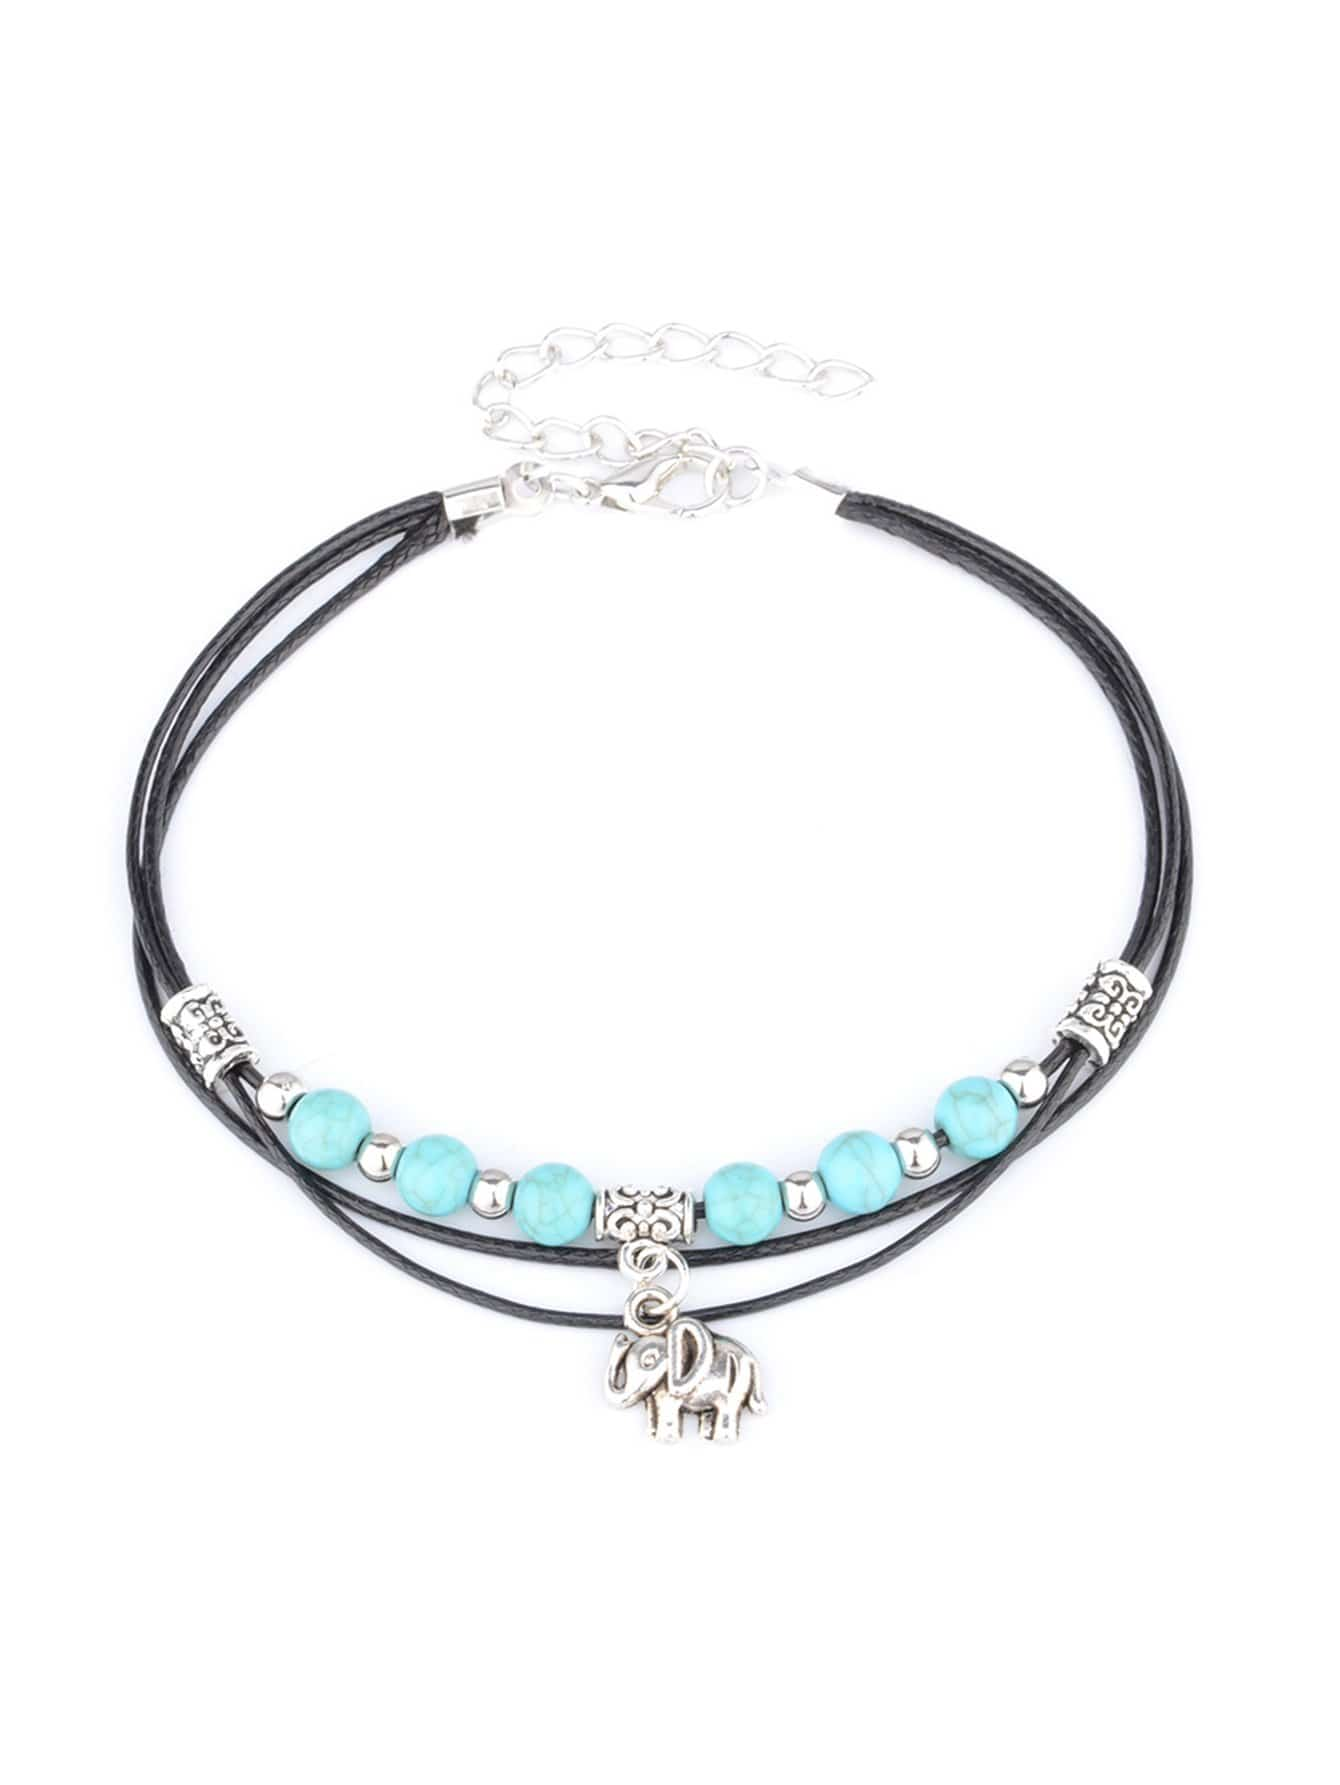 Turquoise Beaded Layered Anklet turquoise beaded layered anklet